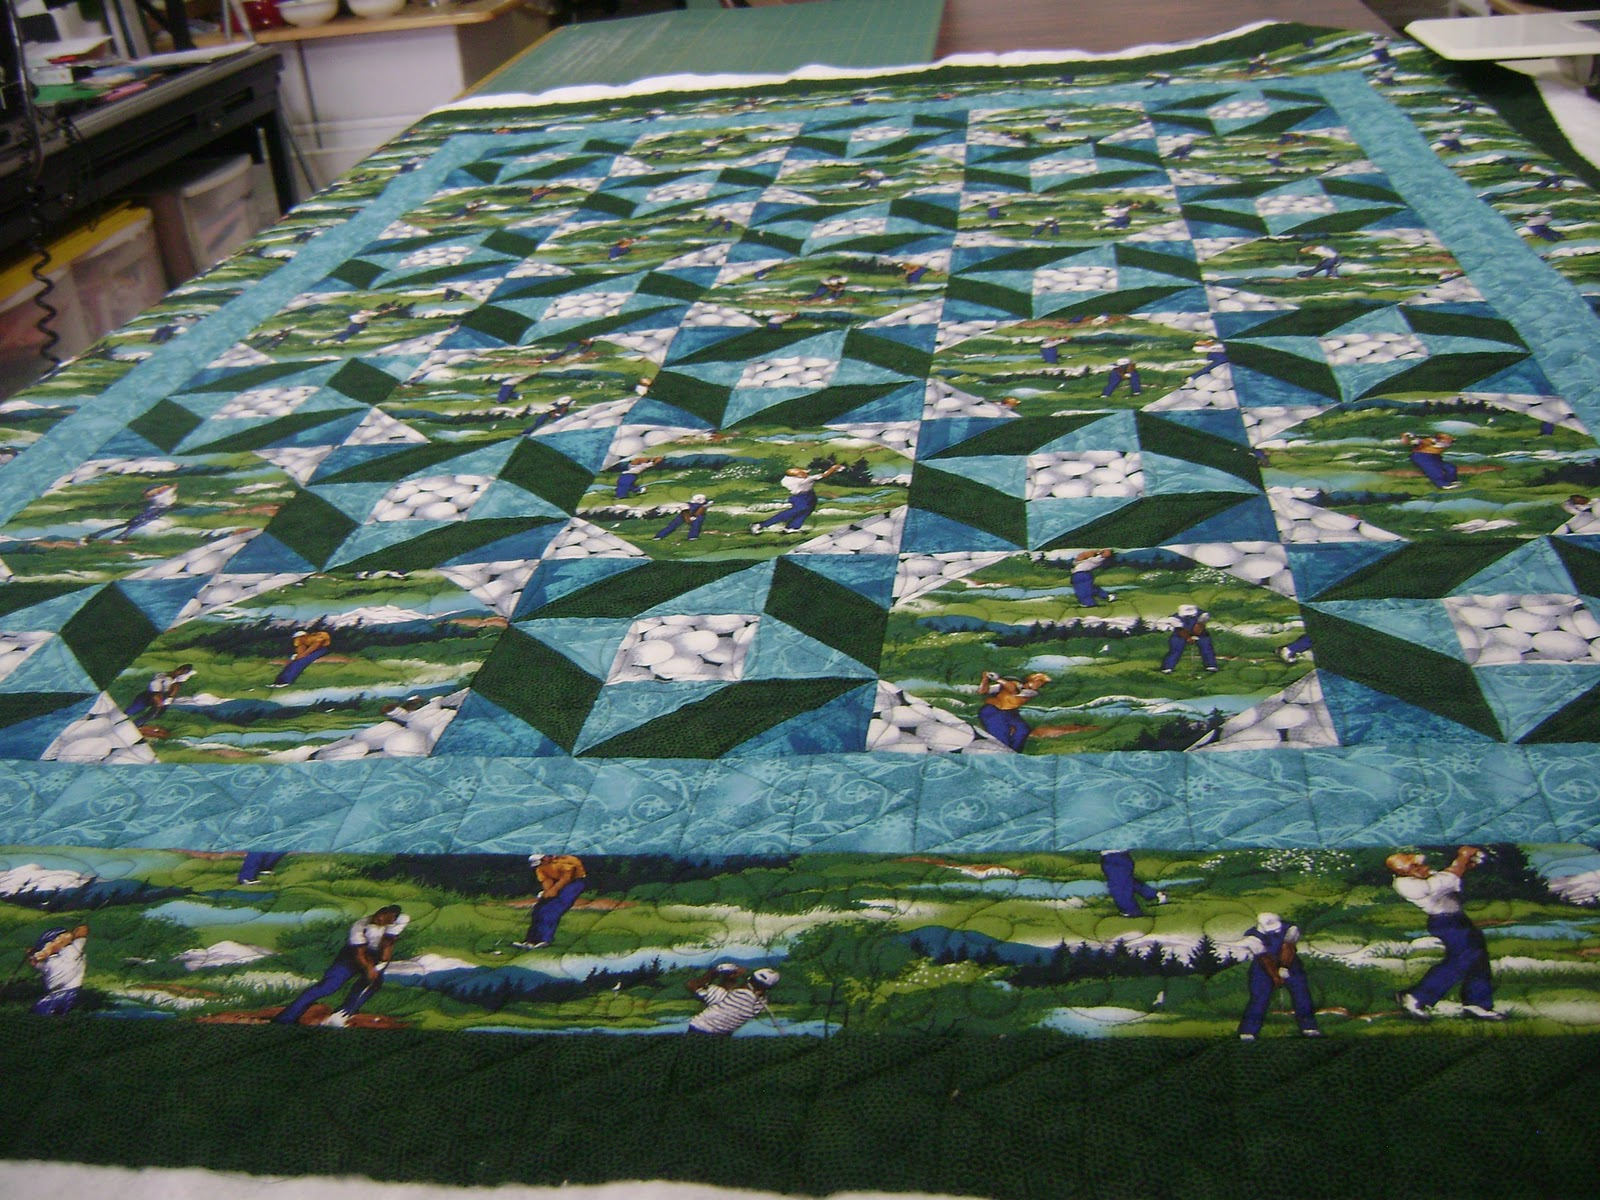 Two more quilted | Anita's quilts and quilting : golf quilts - Adamdwight.com